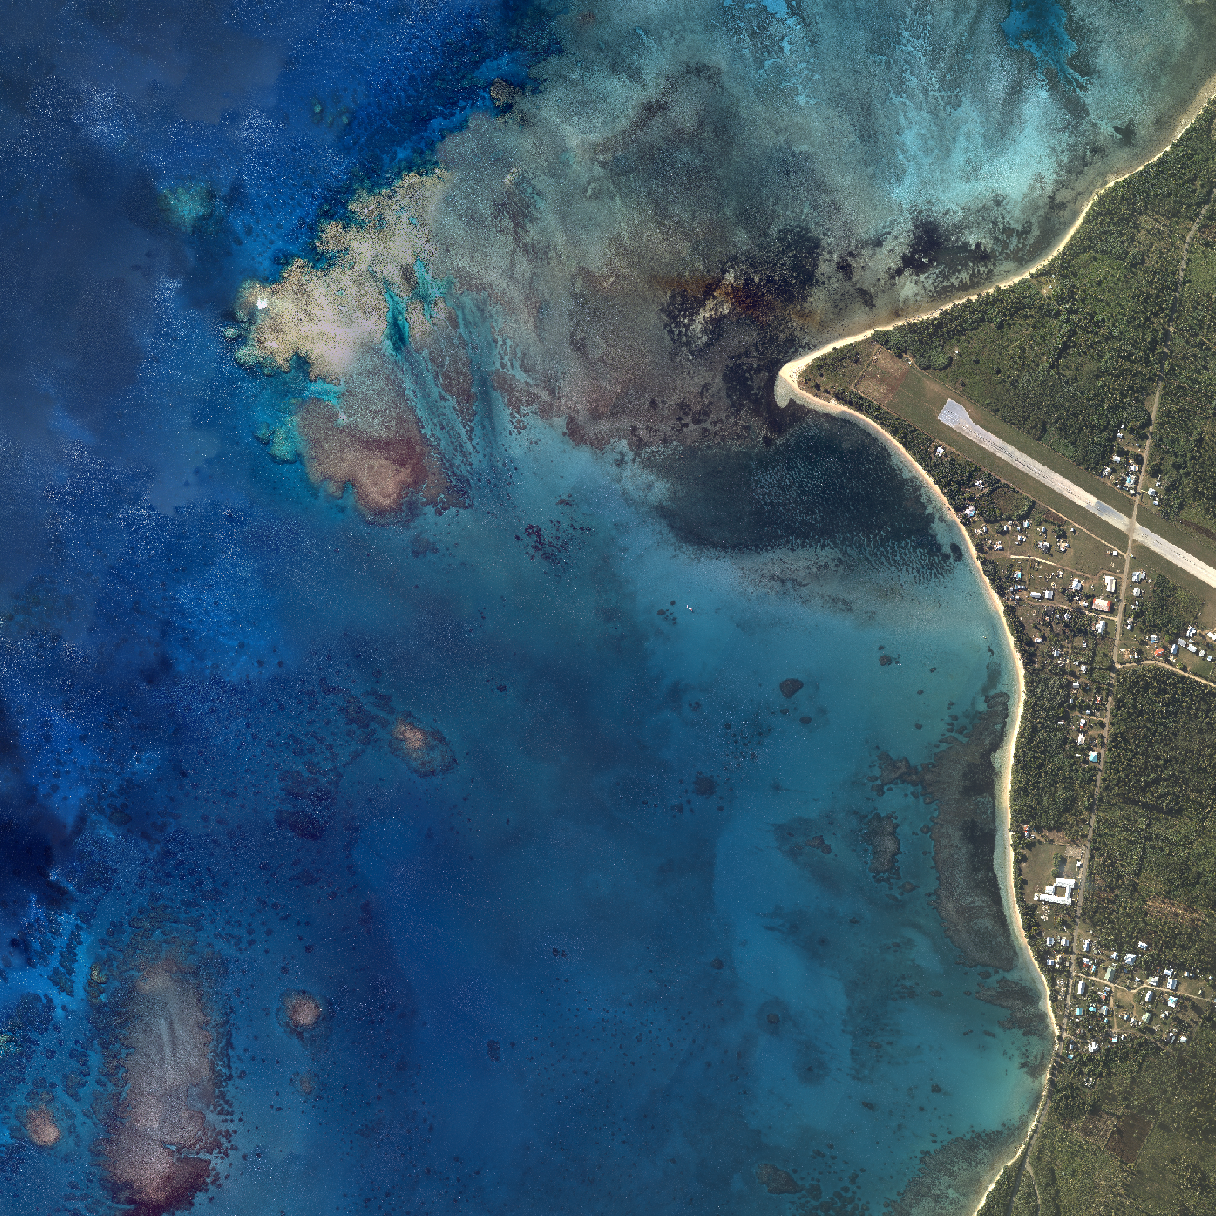 Topo-Bathy Lidar - Latest Generation - with 4 Band Imagery